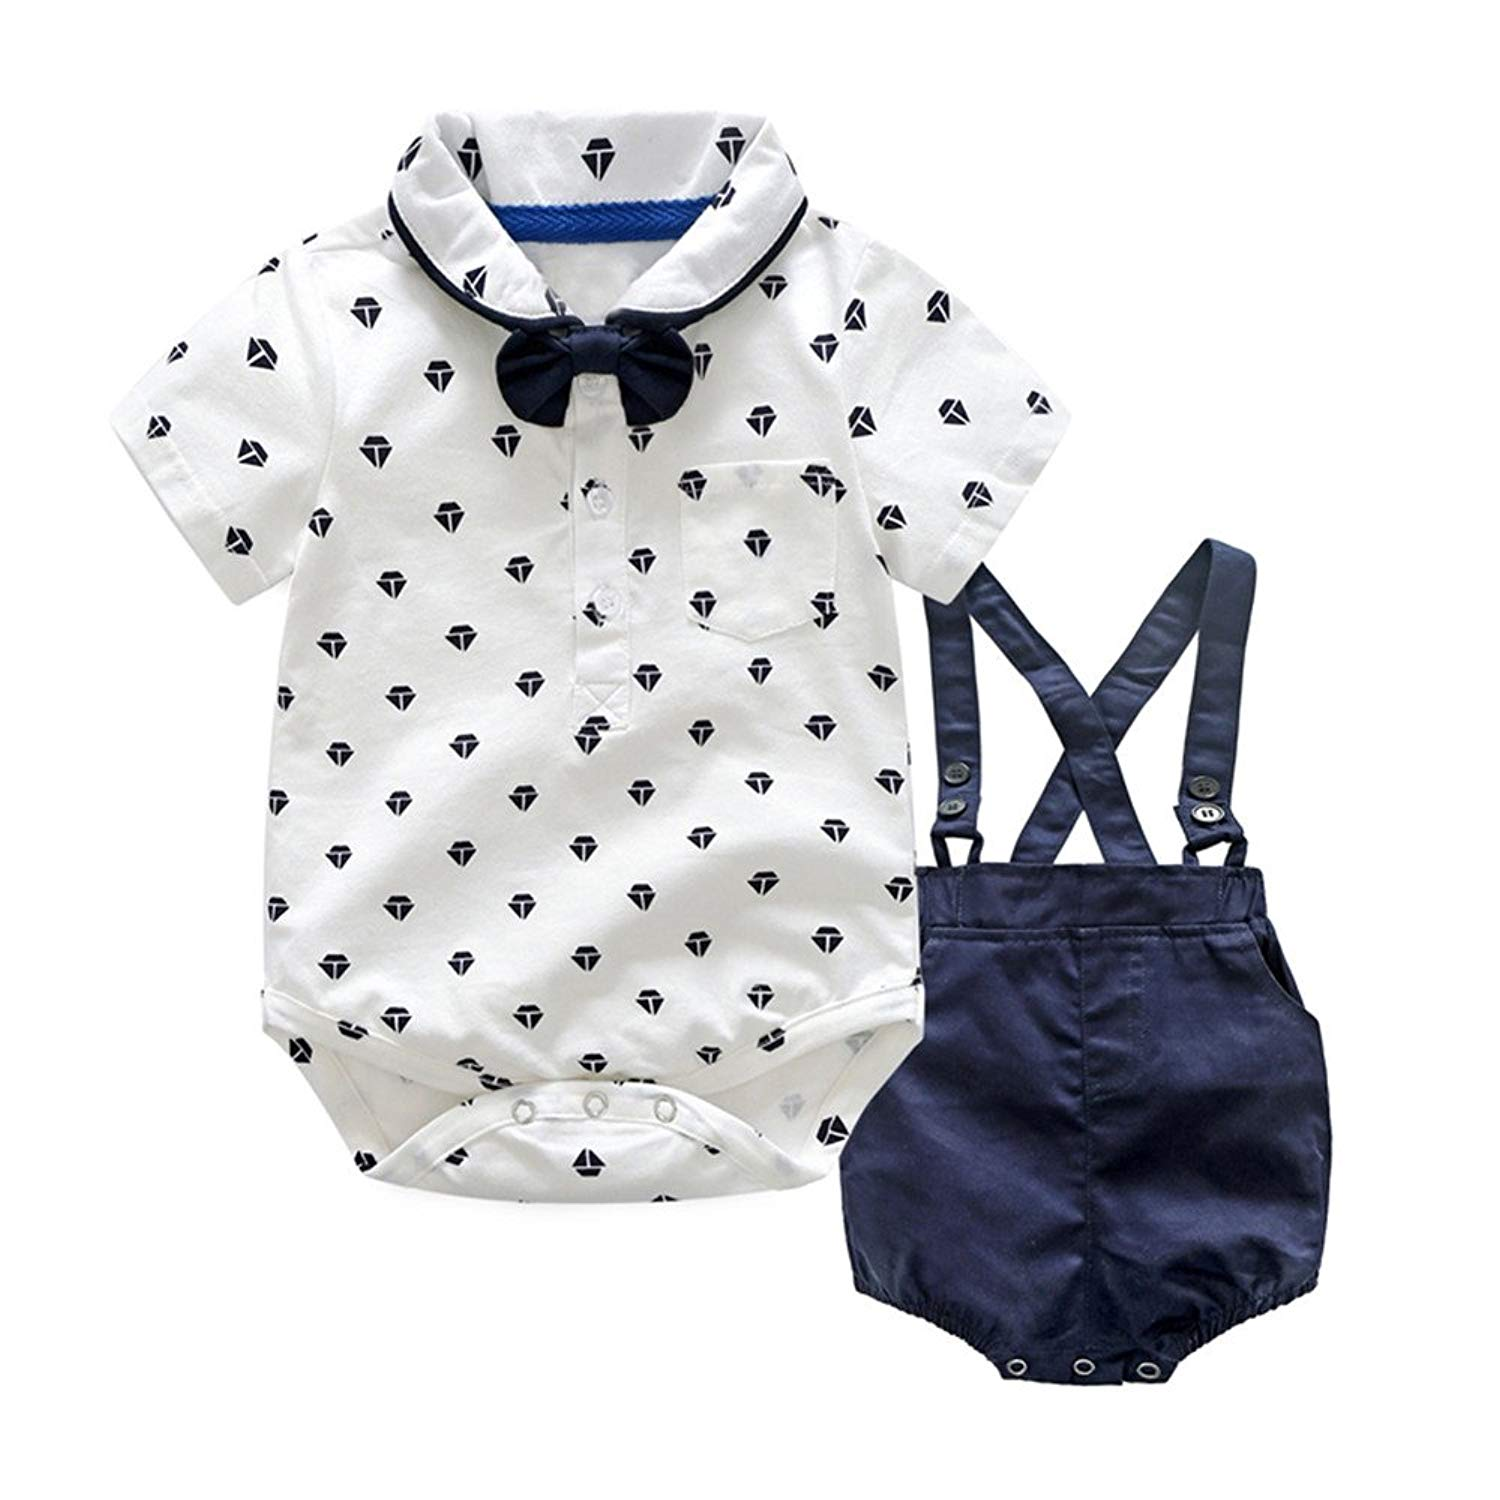 411d942347d3 Get Quotations · Moyikiss Studio Baby Boys Gentleman Outfits Suits Short  Sleeve Romper Tops+Bib Shorts+Bow